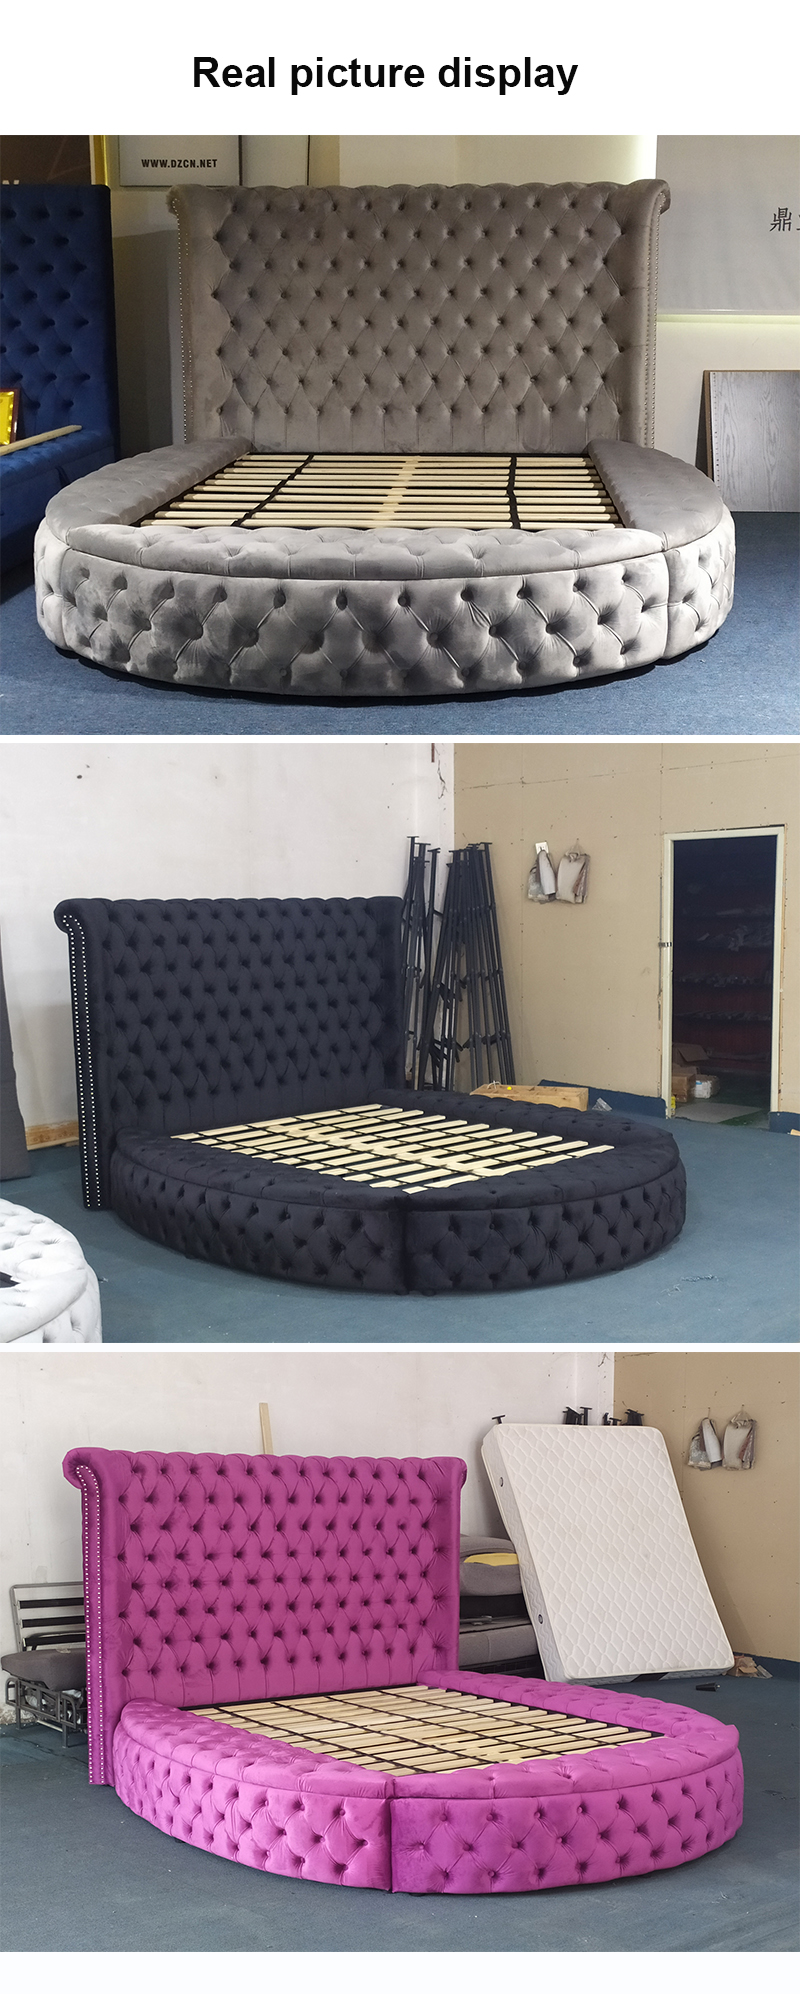 Dingzhi Furniture New Bed Room Furniture Design Luxury Wood Round Camas Velvet Storage King Size Bed Buy Luxury Bed Wood Beds Bed Room Furnitures Product On Alibaba Com